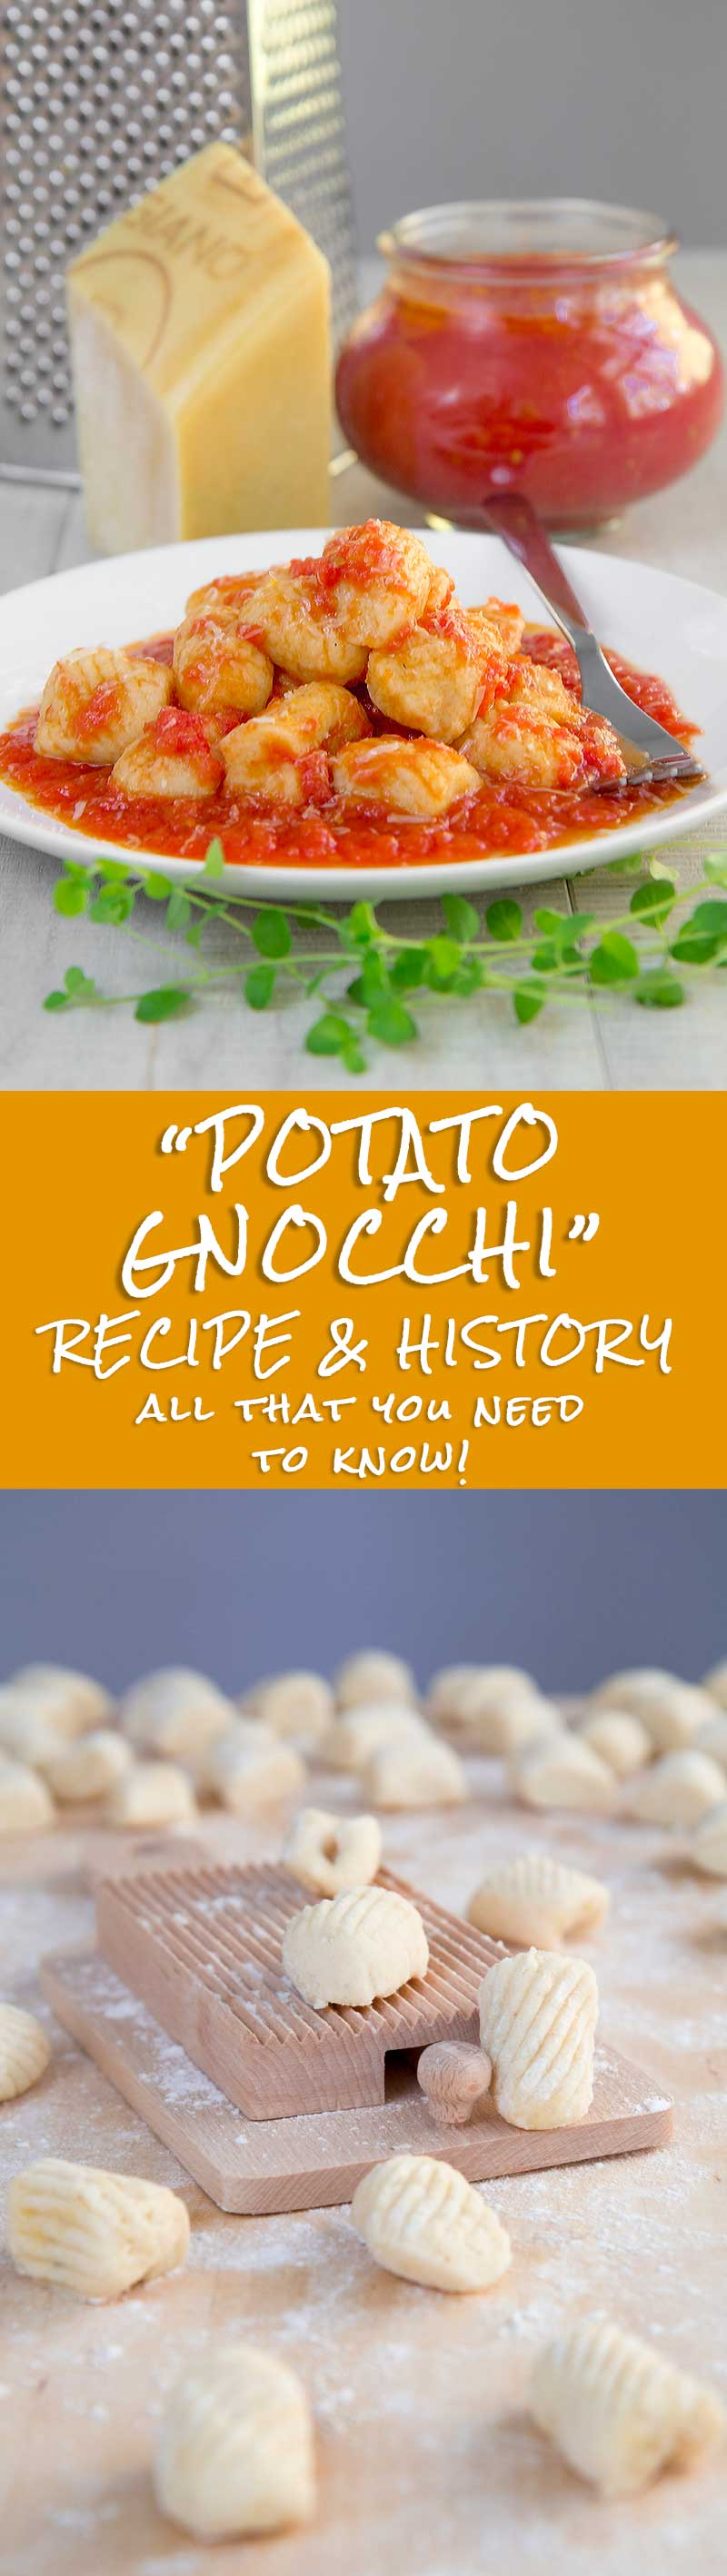 POTATO GNOCCHI RECIPE & HISTORY - all you need to know!